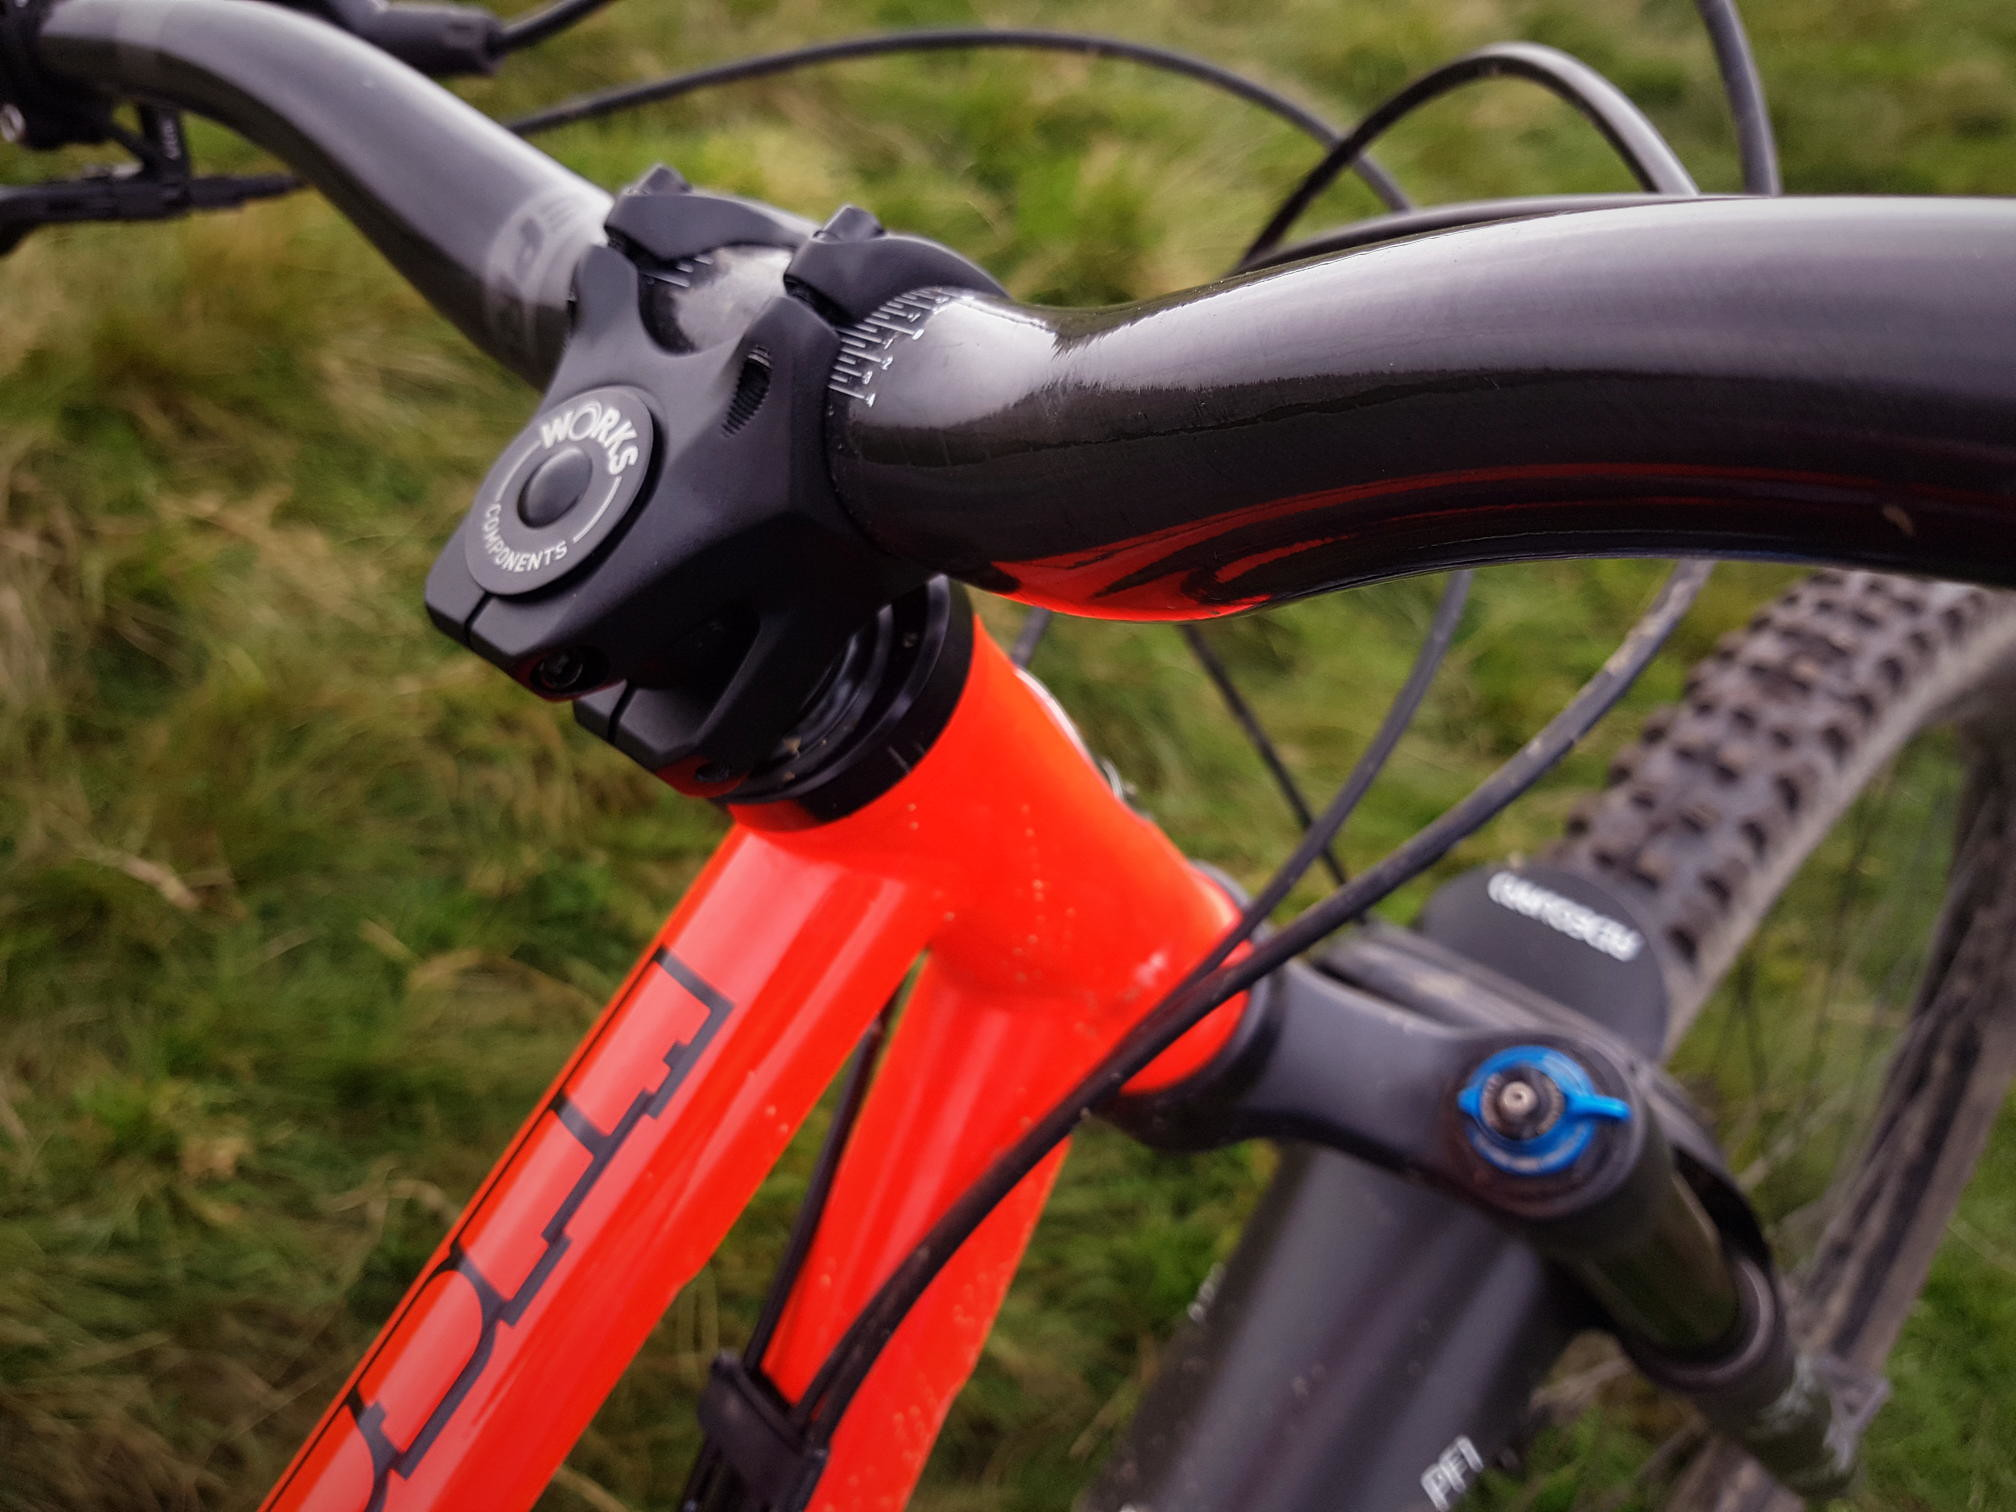 Cotic FlareMAX, steel full suspension, UK made, Reynolds 853, Cotic Bikes, enduro mountain bike, 29er mountain bike, full suspension mountain bike, steel is real, MBR magazine, bike check